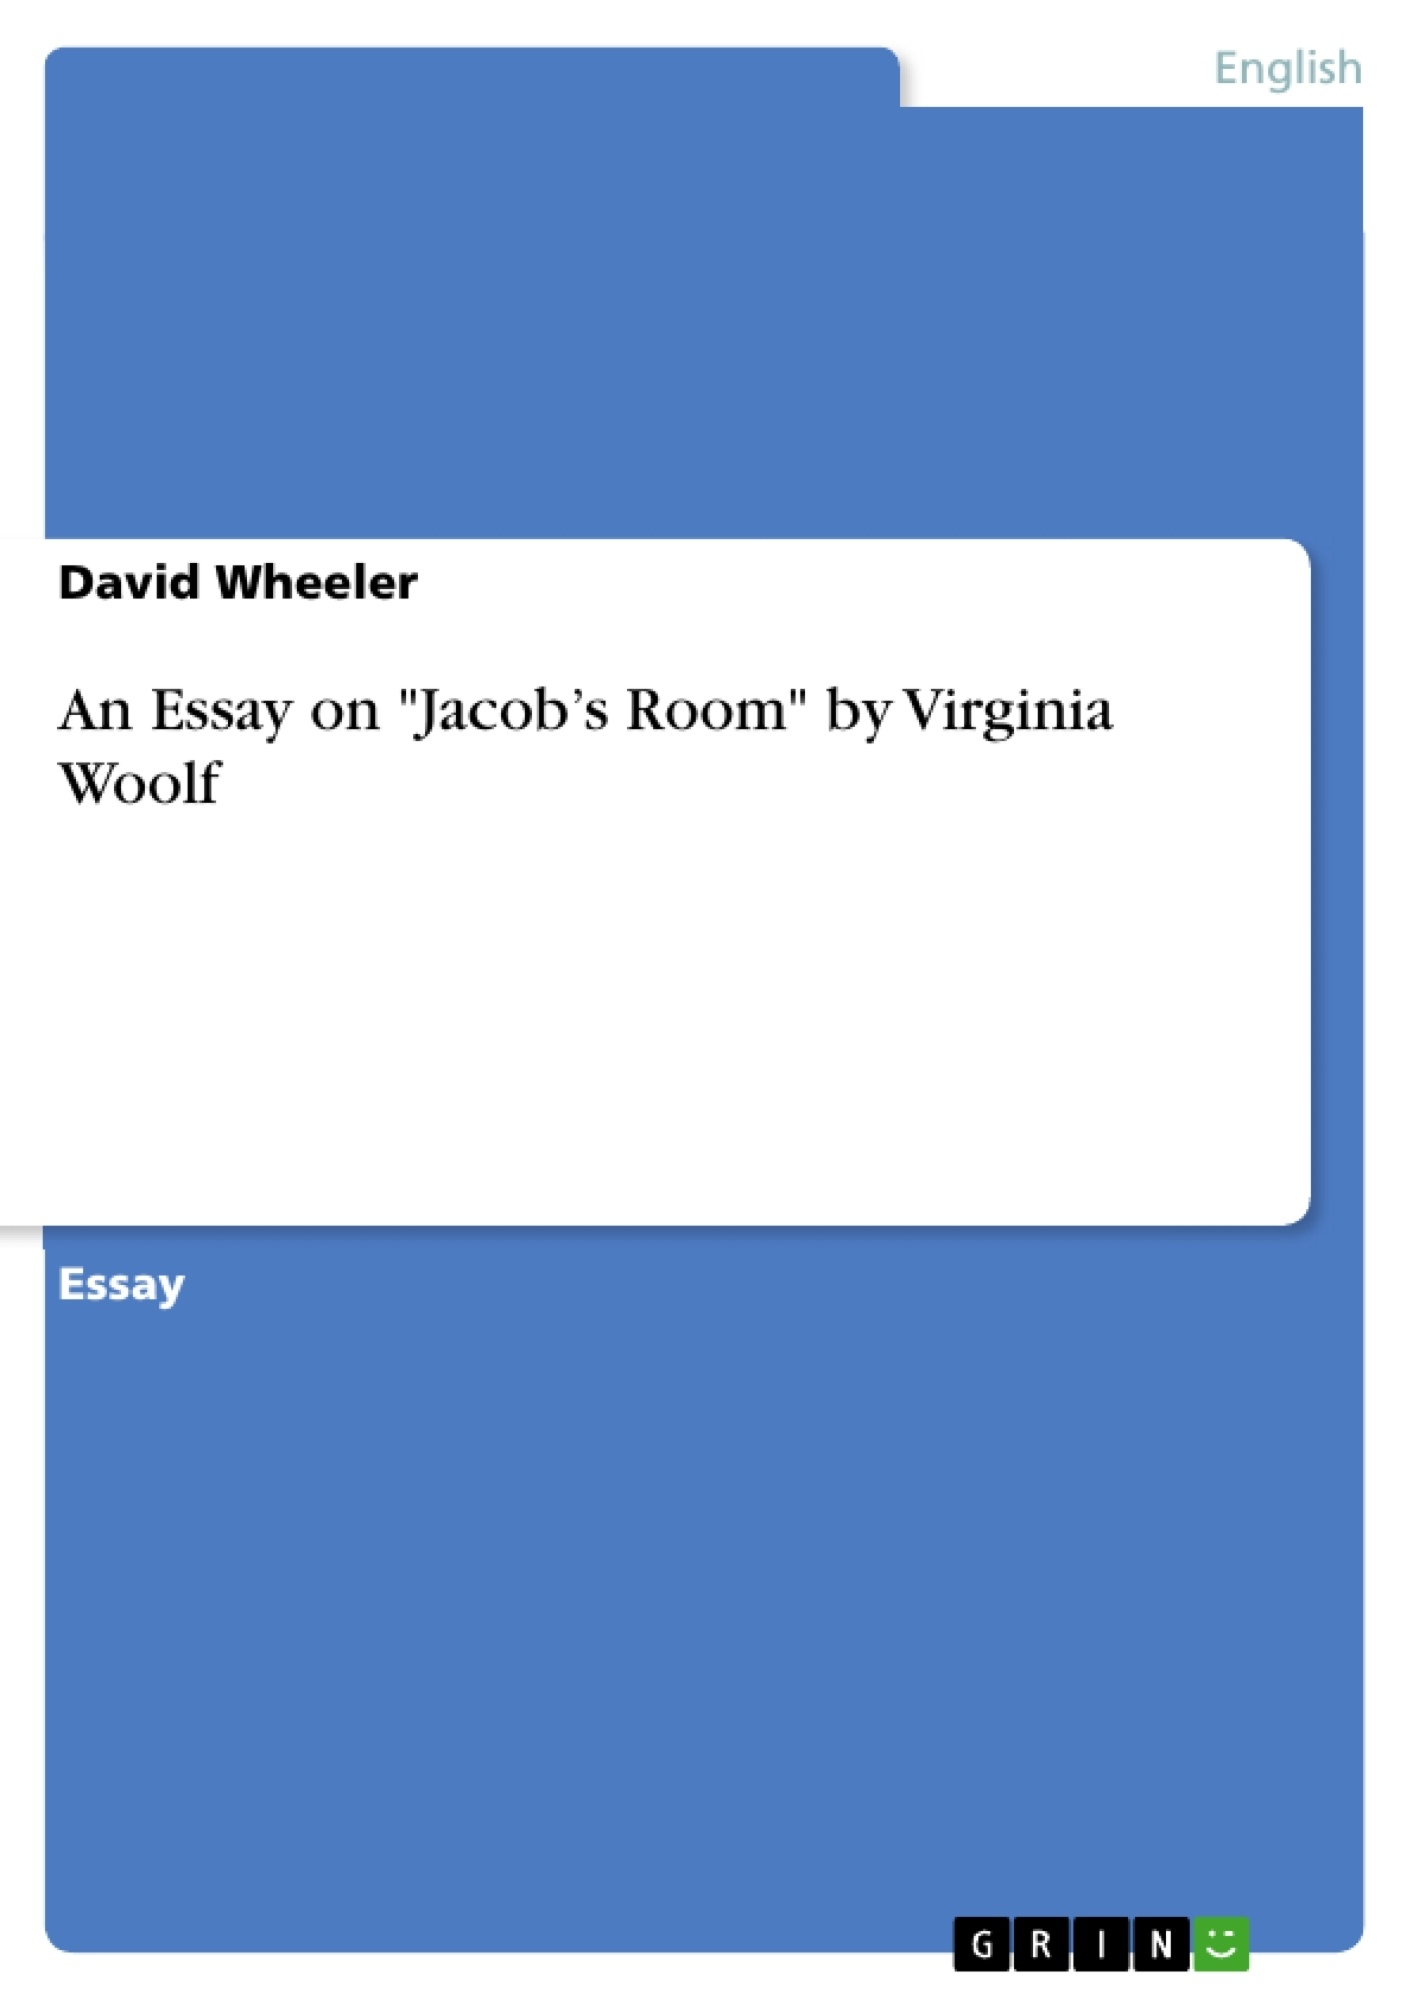 an essay on jacob s room by virginia woolf publish your upload your own papers earn money and win an iphone 7